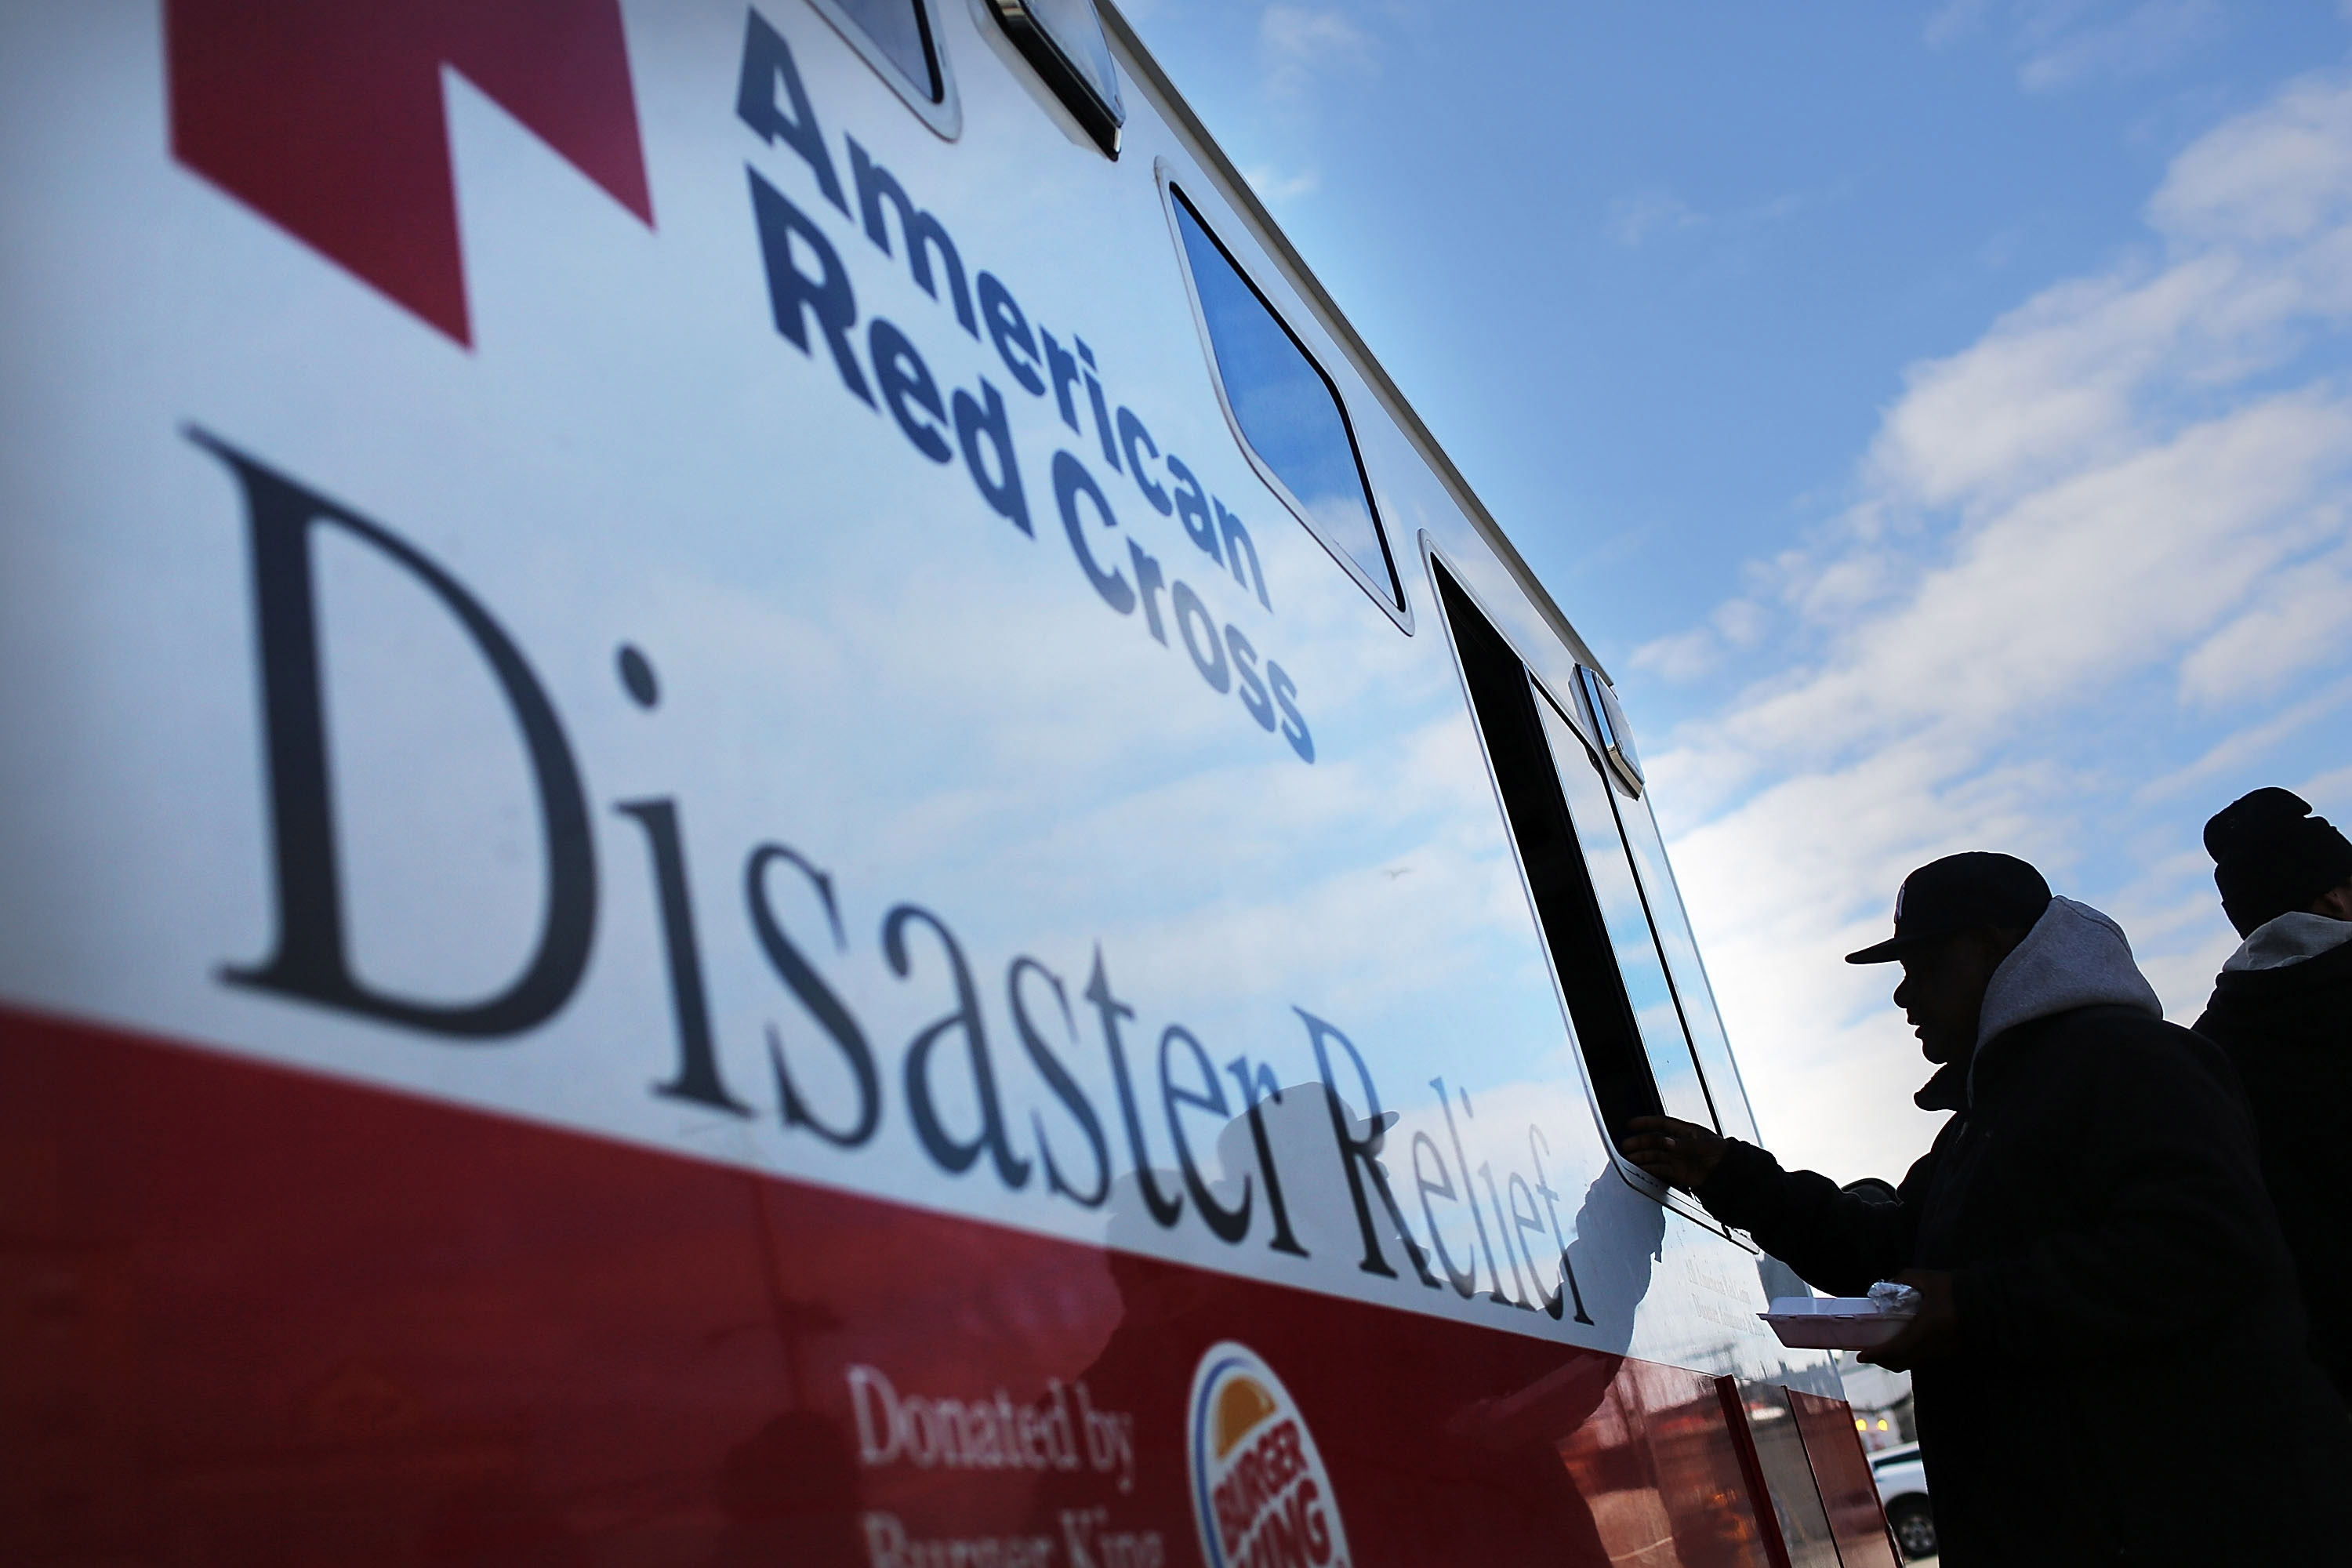 Report: Red Cross was totally unprepared for Sandy relief